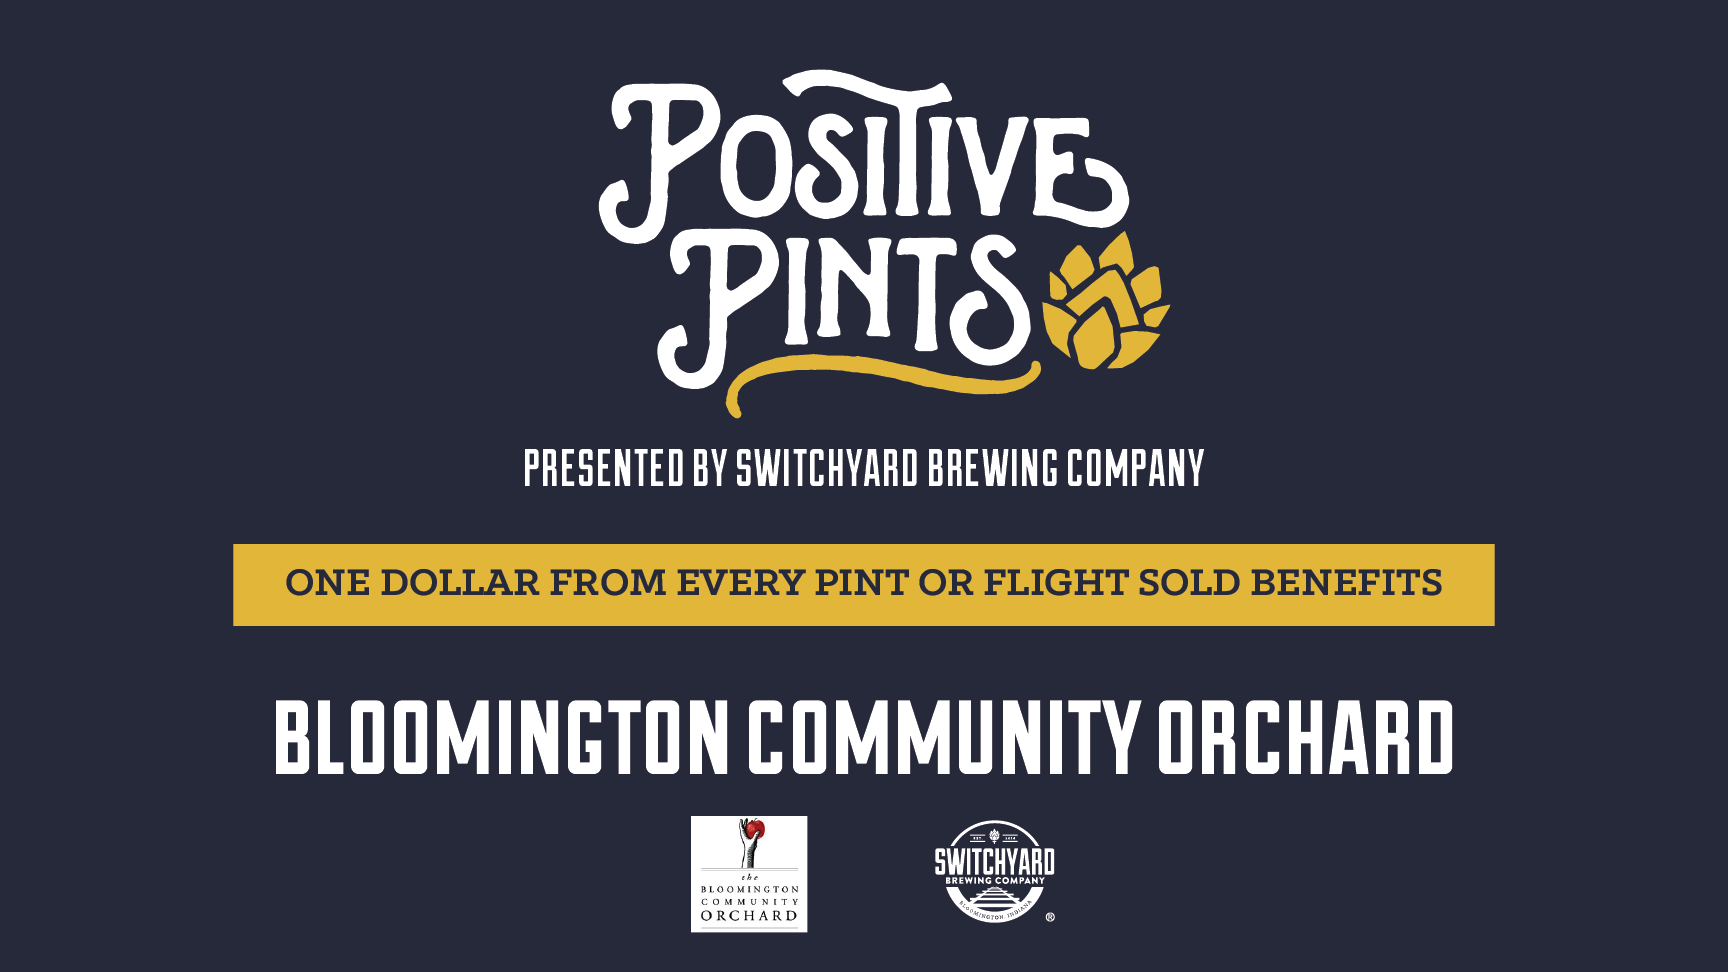 Let's raise a glass (and raise some money) for a great organization! $1 from every pint or flight sold between 2-5 PM will go towards  Bloomington Community Orchard , an organization devoted to growing fruit for the community and growing orcharding skills through educational opportunities.   The publicly owned orchard is maintained by volunteers, and the harvest is available to everyone in the community.  #ShareOurCraft